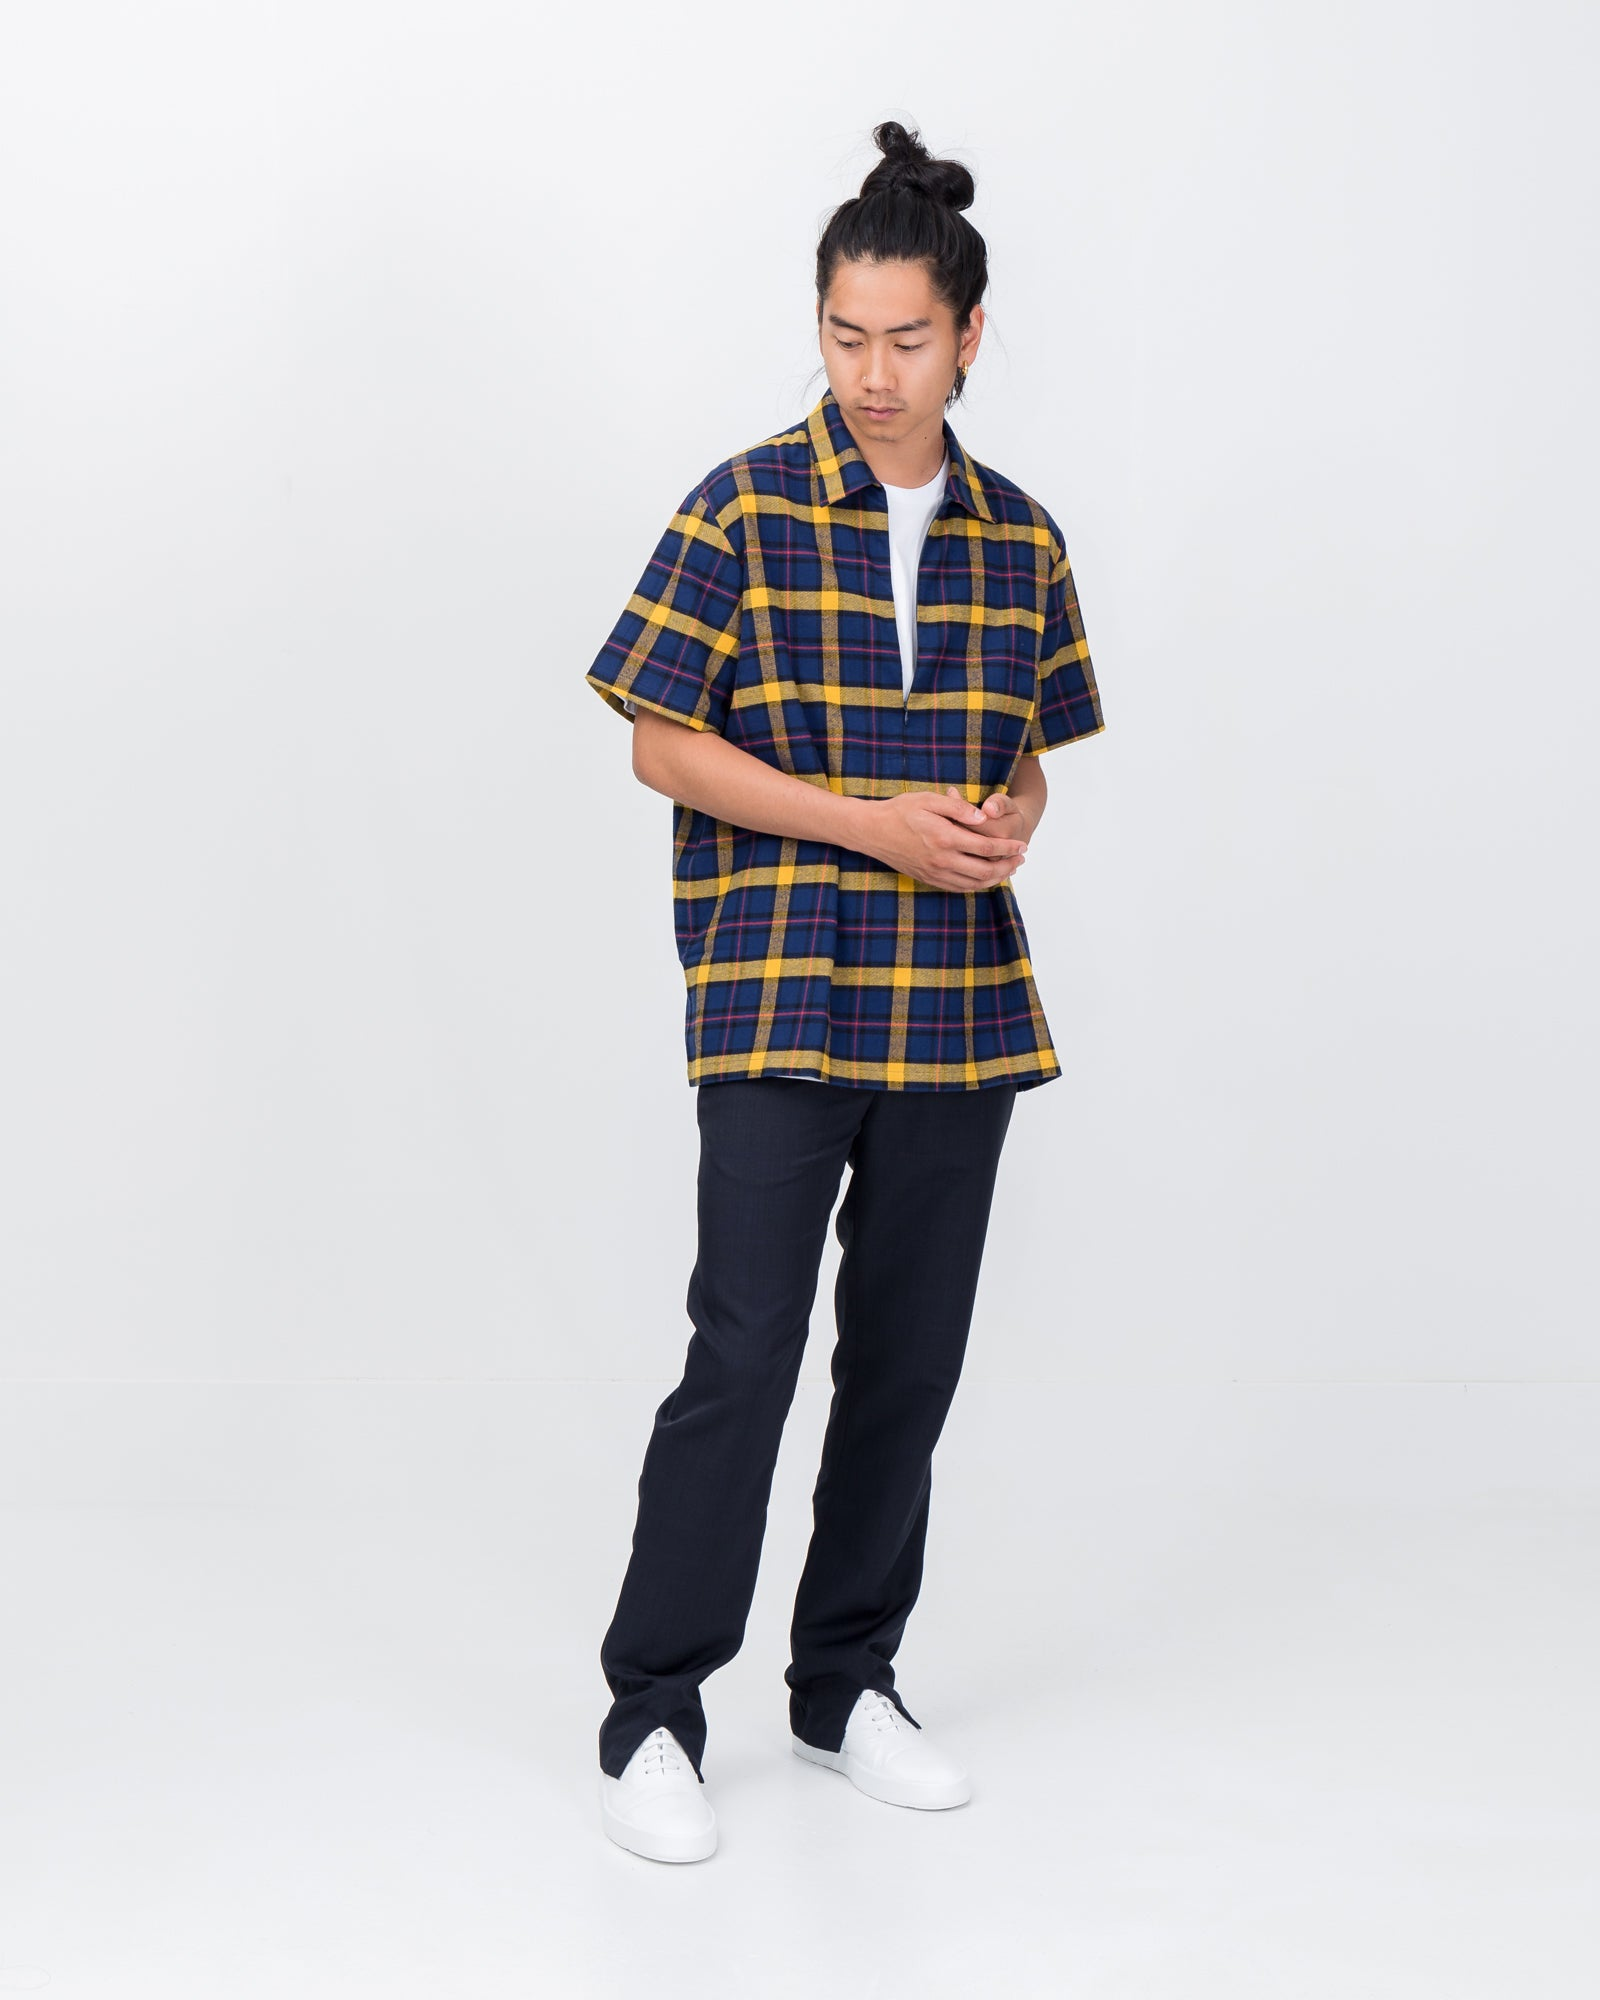 Sunday's Best Trousers in Navy Plaid | Goodfight